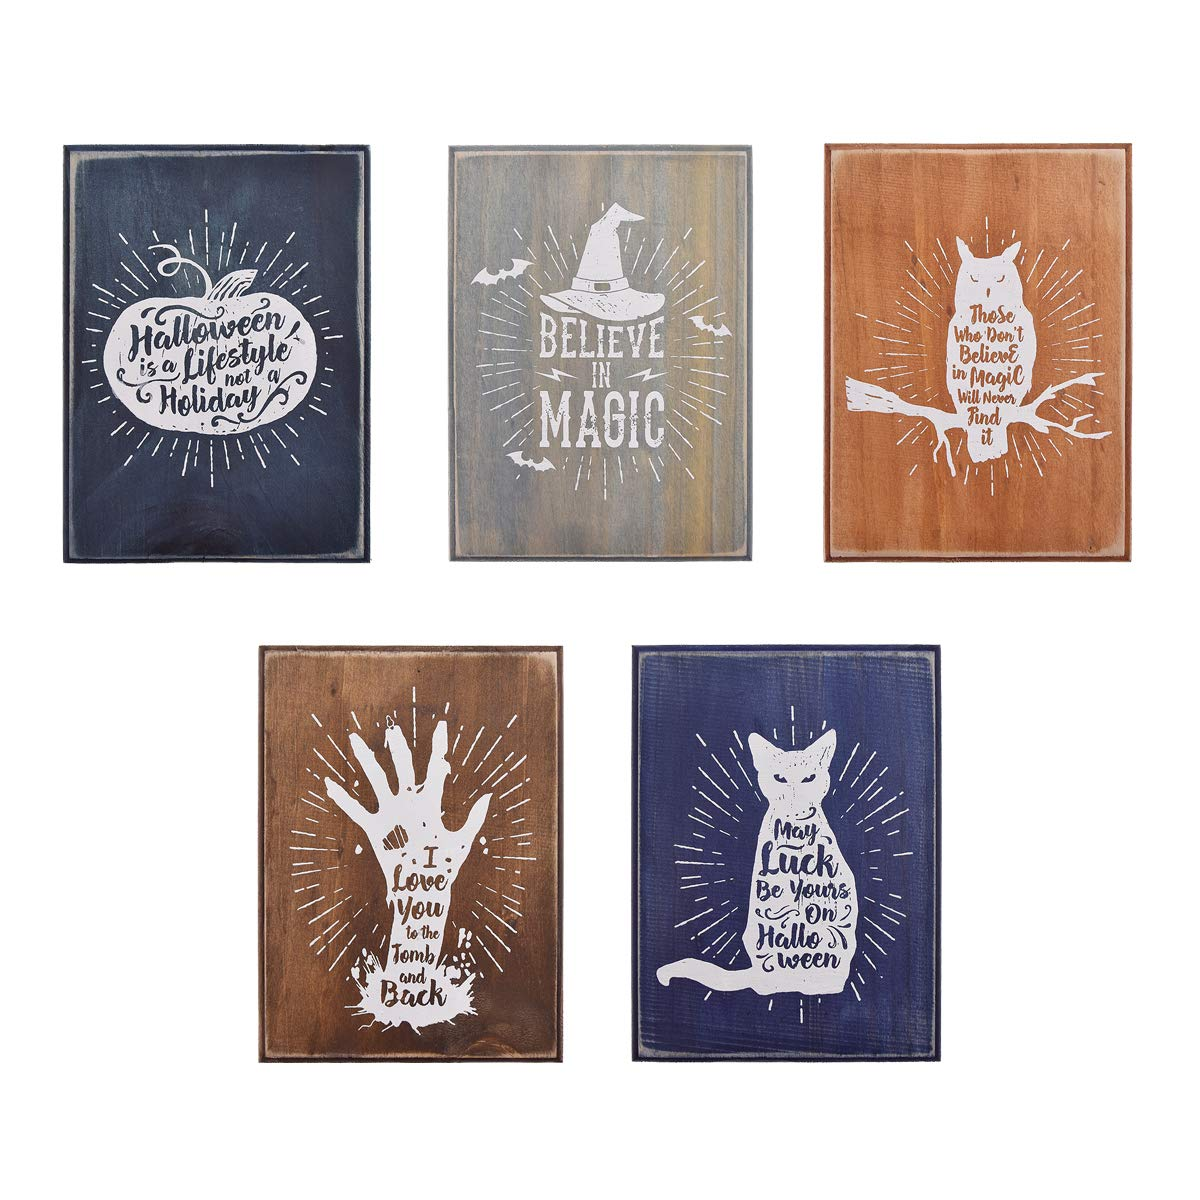 YeulionCraft DIY Halloween Theme Self-Adhesive Silk Screen Printing Stencil Mesh Transfers with Five Decorative Wood Plank for DIY T-Shirt Pillow Fabric Painting Paper Decoration Wall Decor by YeulionCraft